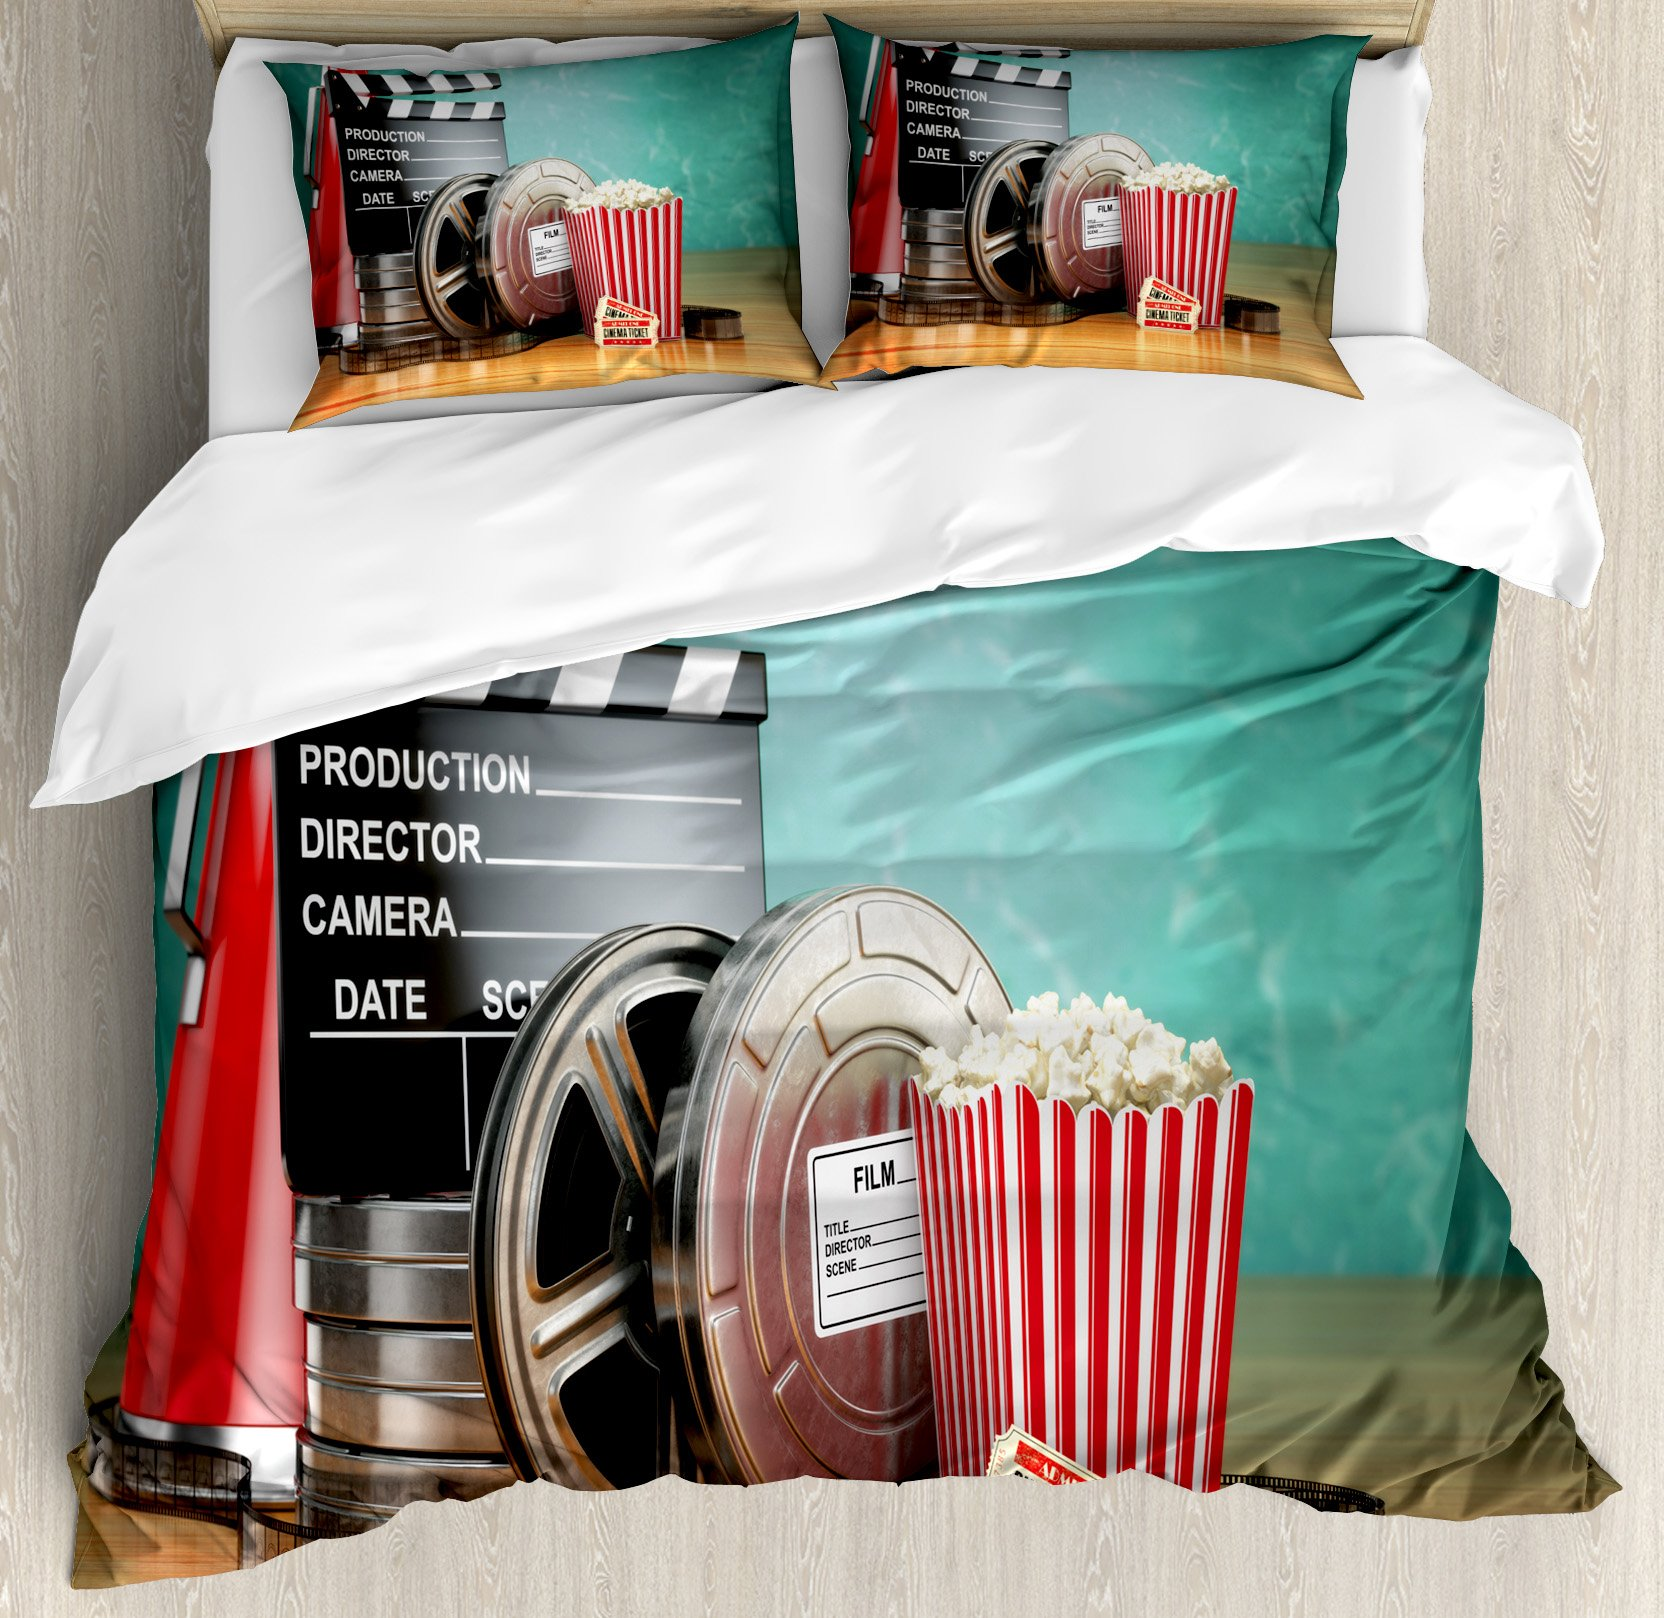 Ambesonne Movie Theater King Size Duvet Cover Set, Production Theme 3D Film Reels Clapperboard Tickets Popcorn and Megaphone, Decorative 3 Piece Bedding Set with 2 Pillow Shams, Multicolor